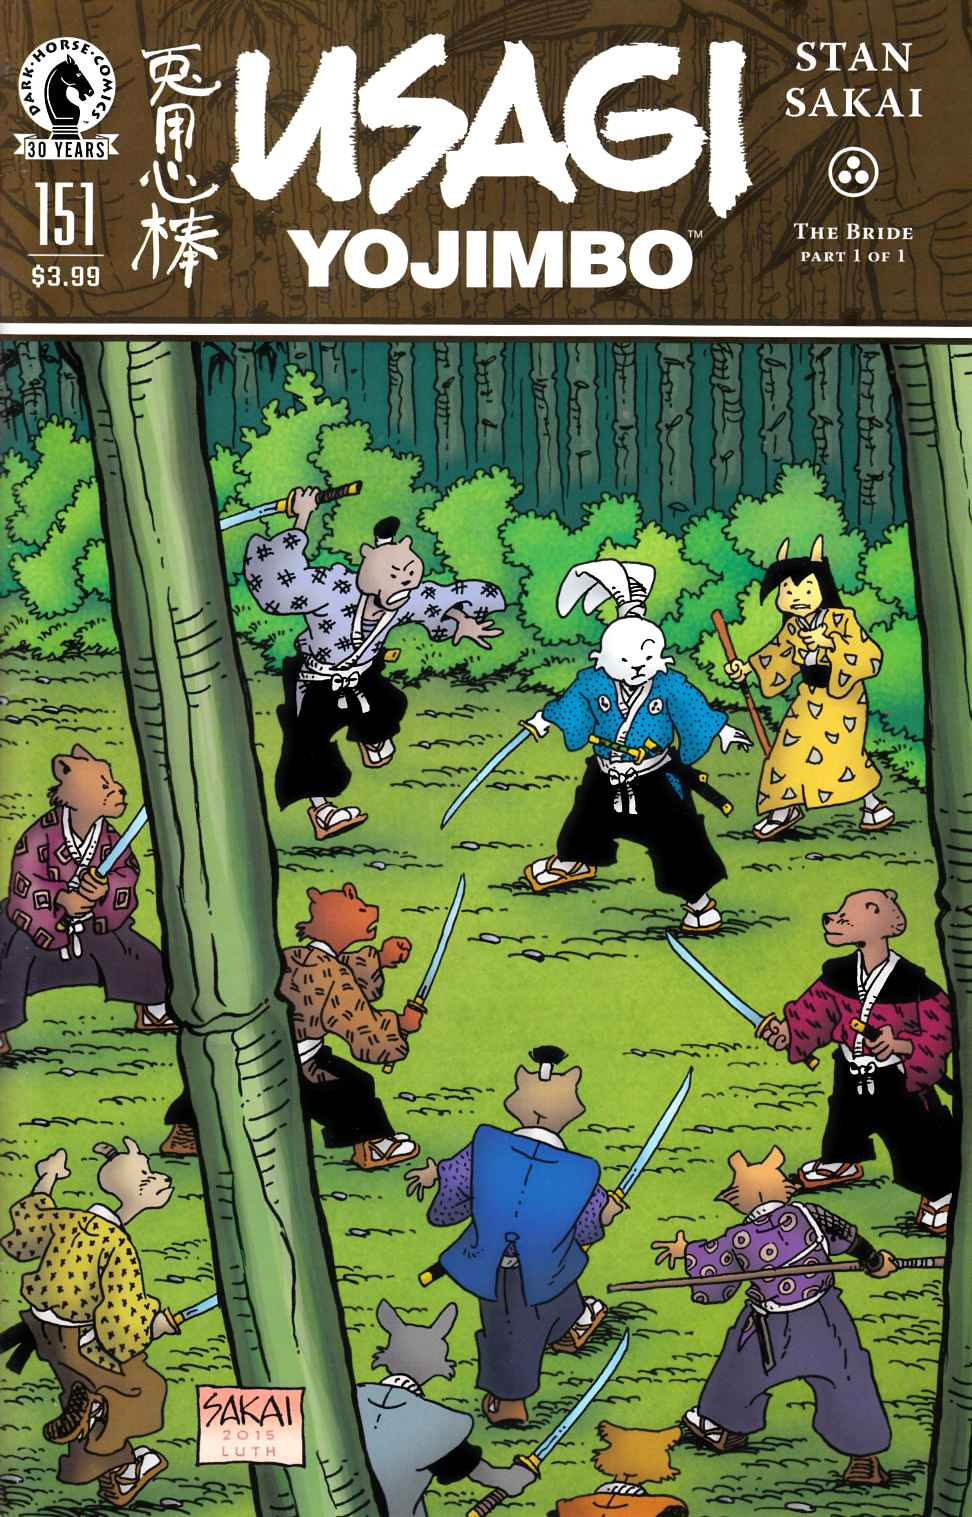 Usagi Yojimbo #151 [Dark Horse Comic] THUMBNAIL